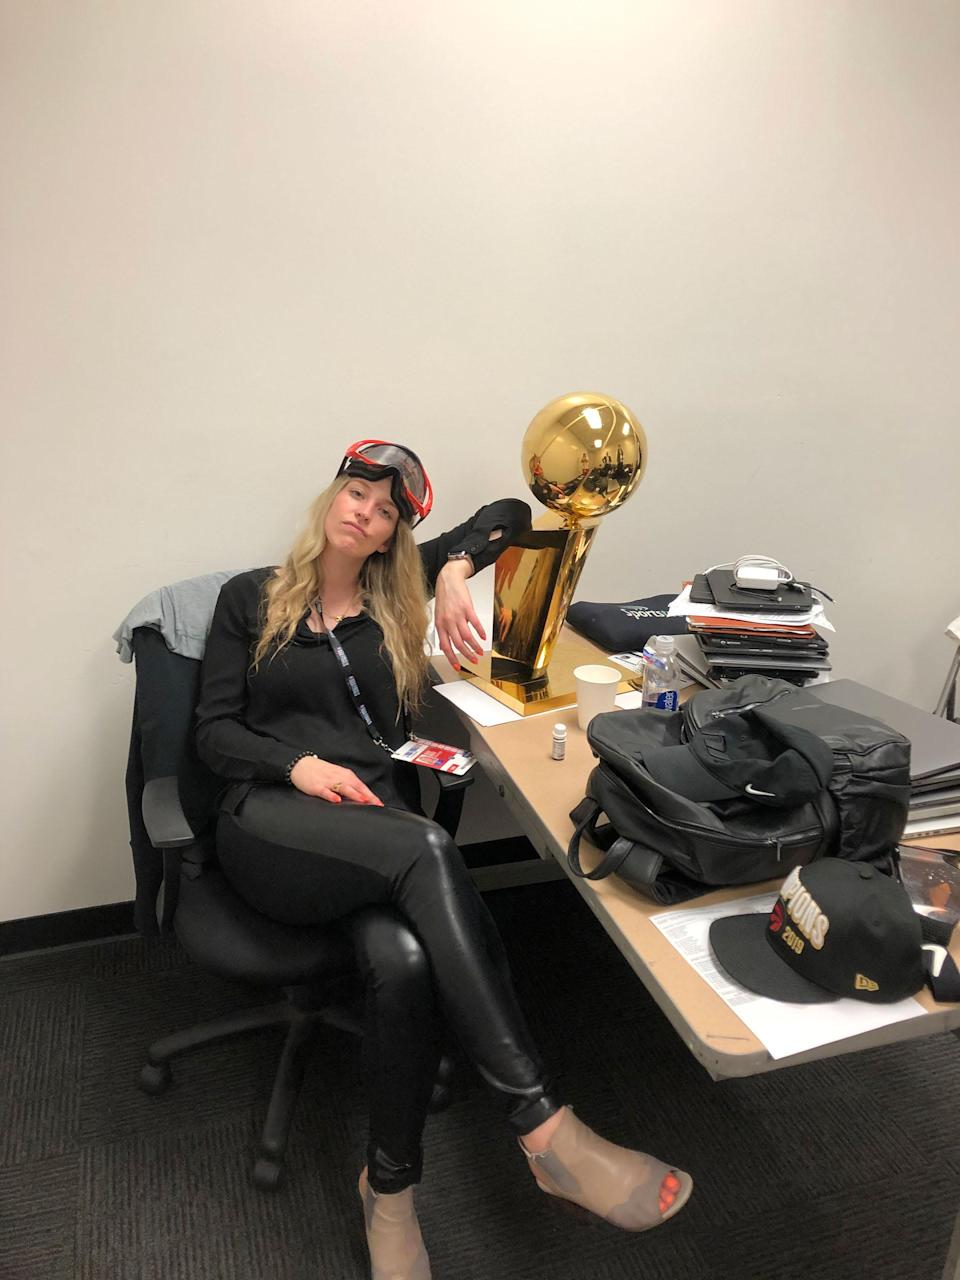 Toronto Raptors Shelby Weaver poses with Larry O'Brien trophy.